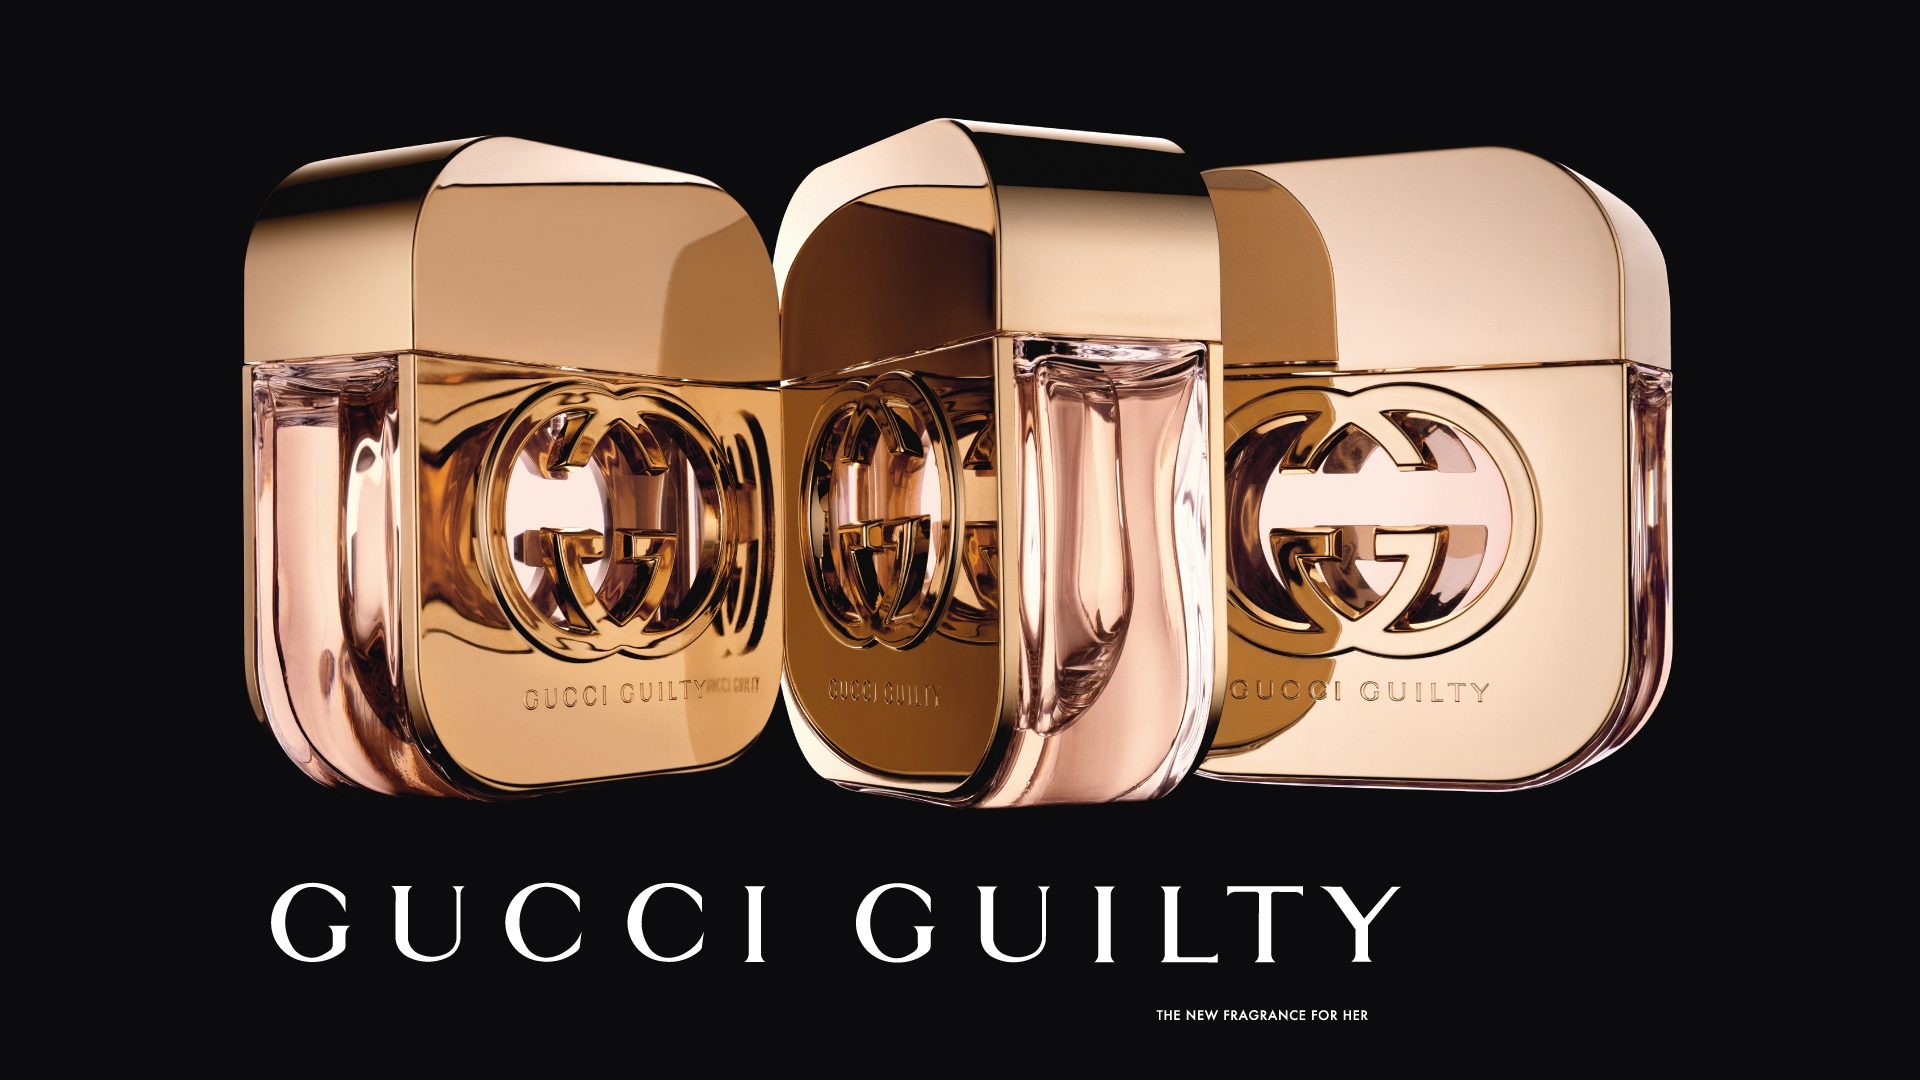 Gucci Wallpaper Iphone 6 Gucci Guilty Perfume For Her Hd Wallpapers Hd Wallpapers